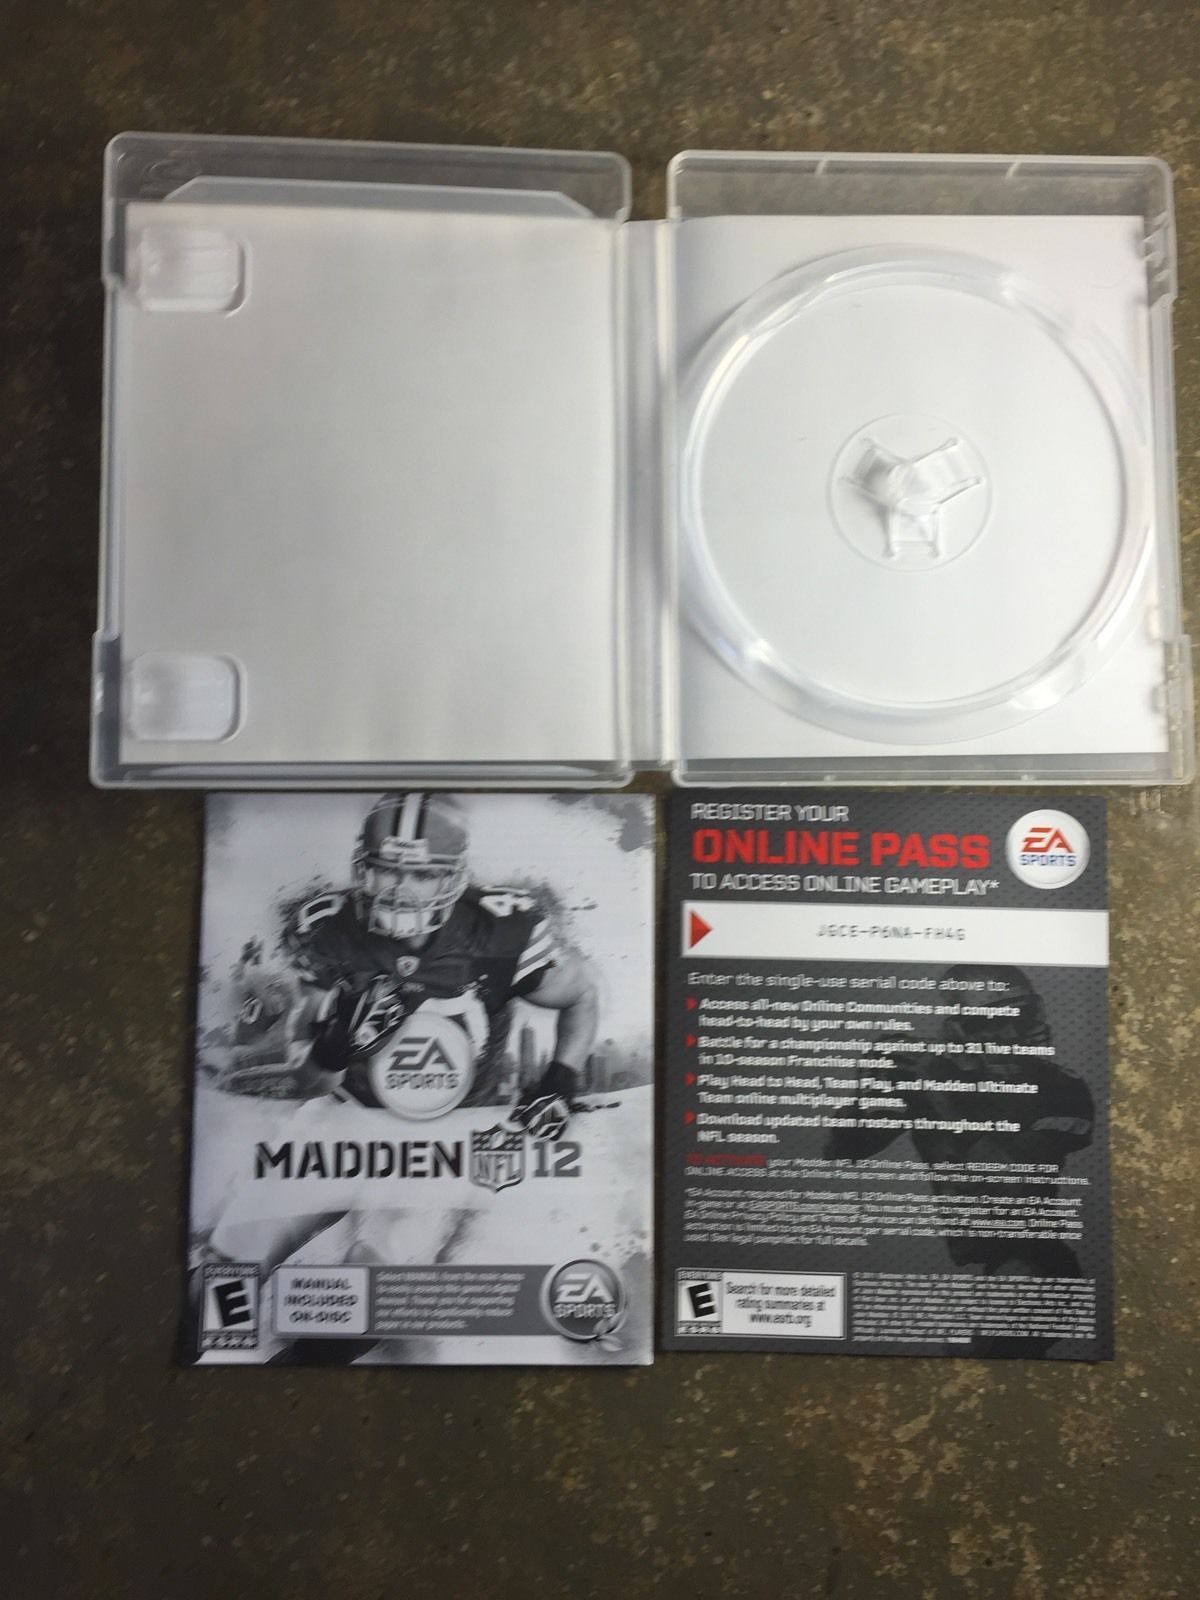 Madden 16 ports manuals and tips and tricks